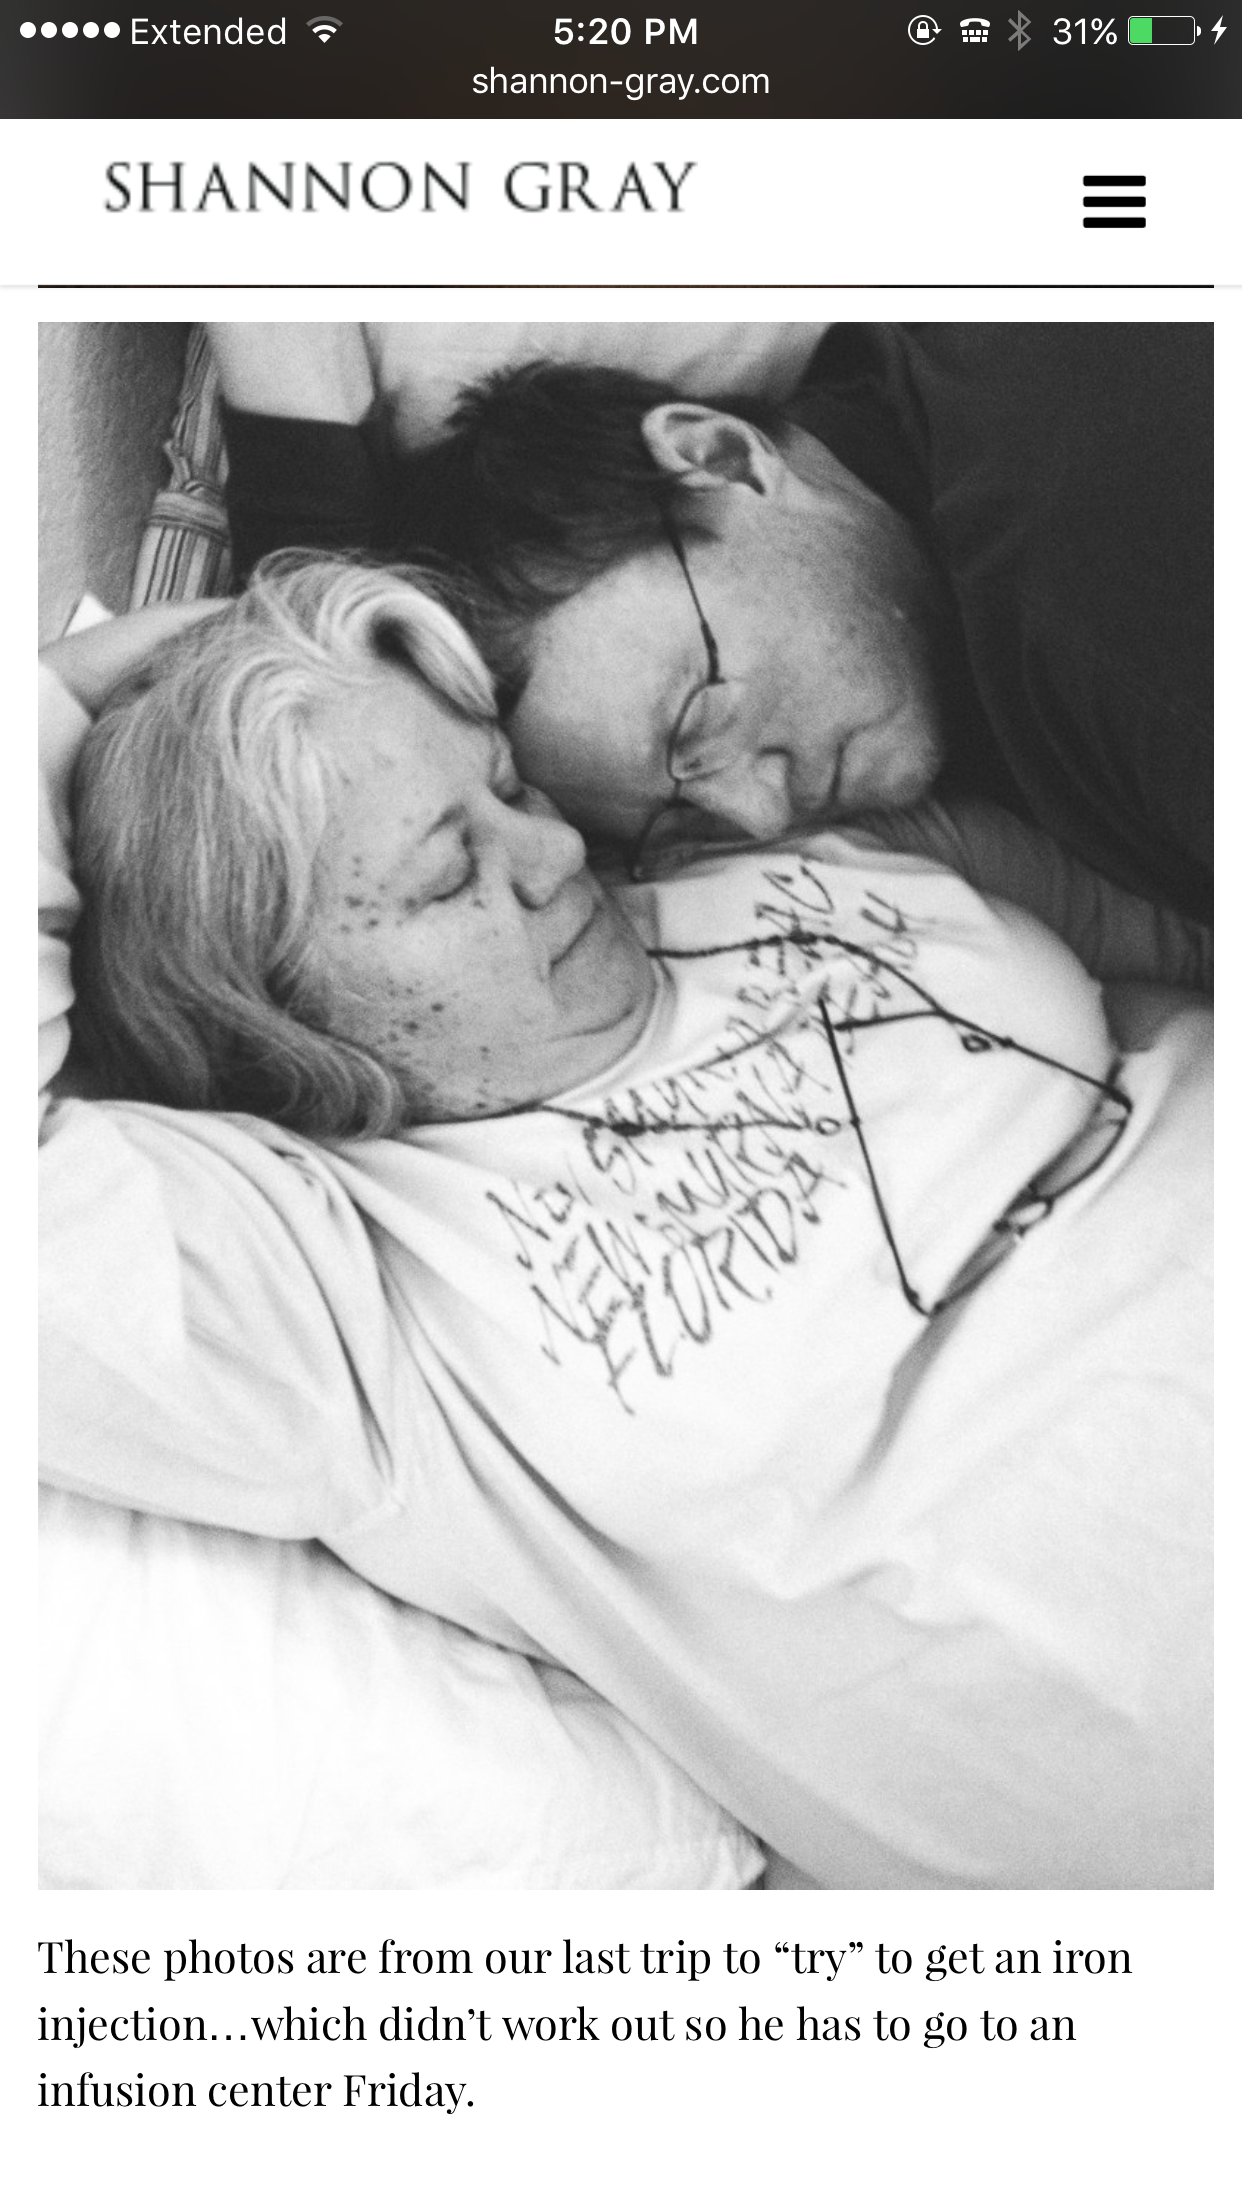 It wasn't in vein and it was more real than the air we breath. Their lesson in love is their legacy.